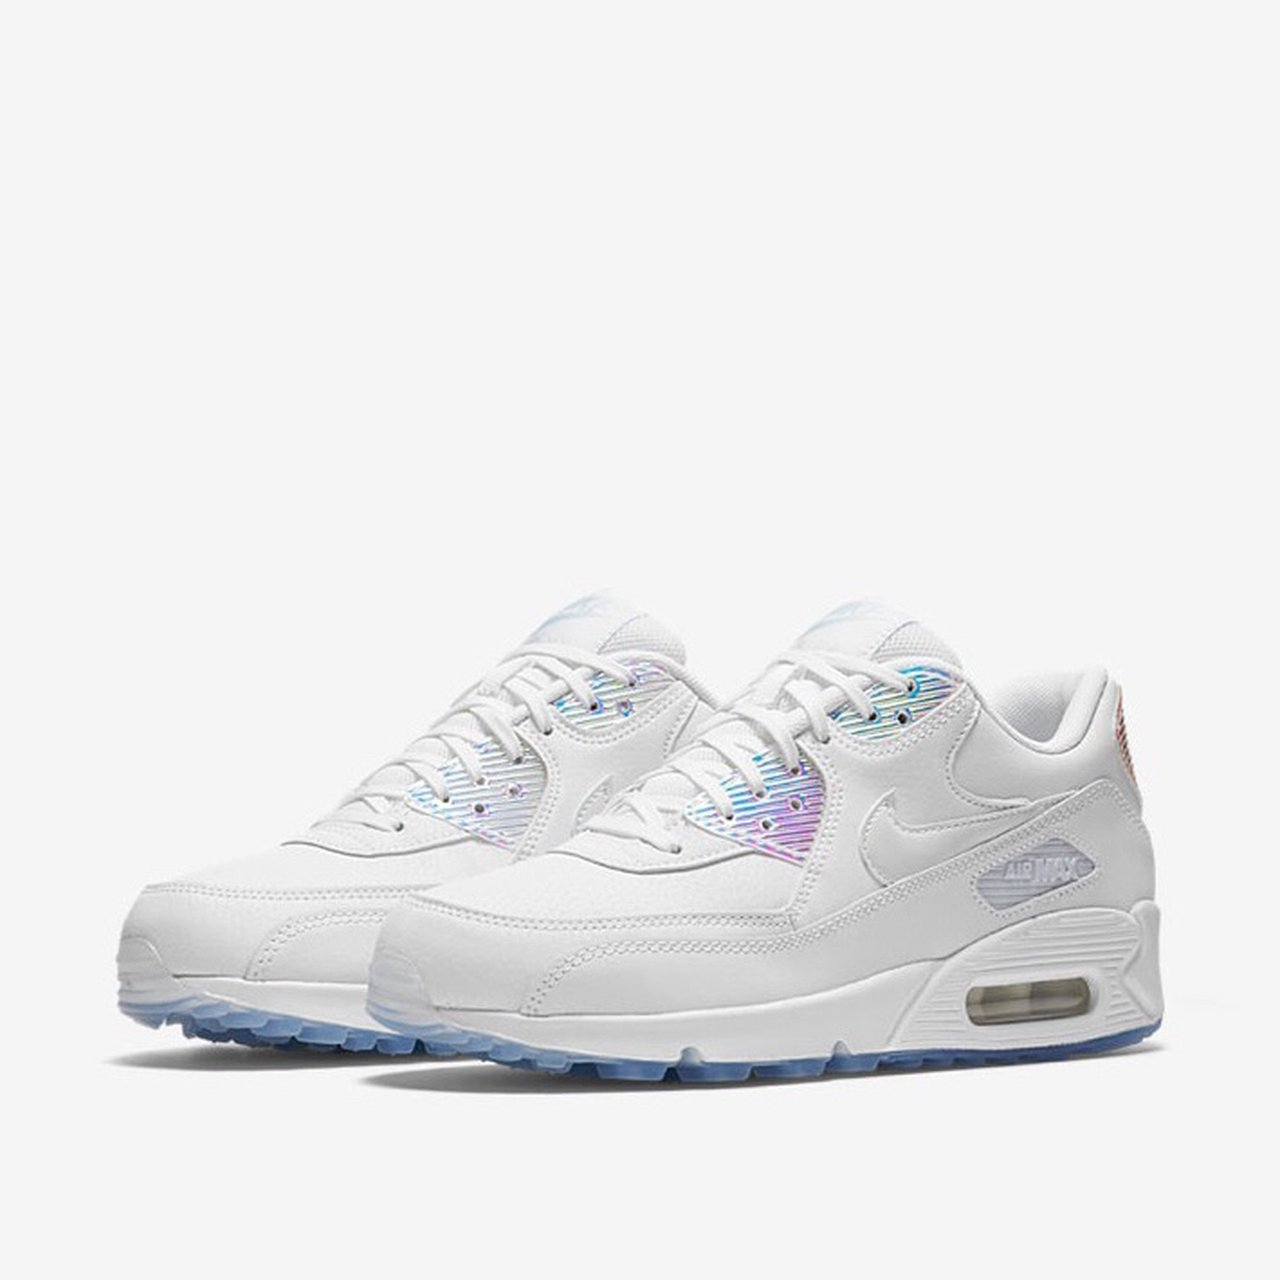 Women s Nike Air Max 90 Summer Shine. All white leather with - Depop 5ceb3dcf7